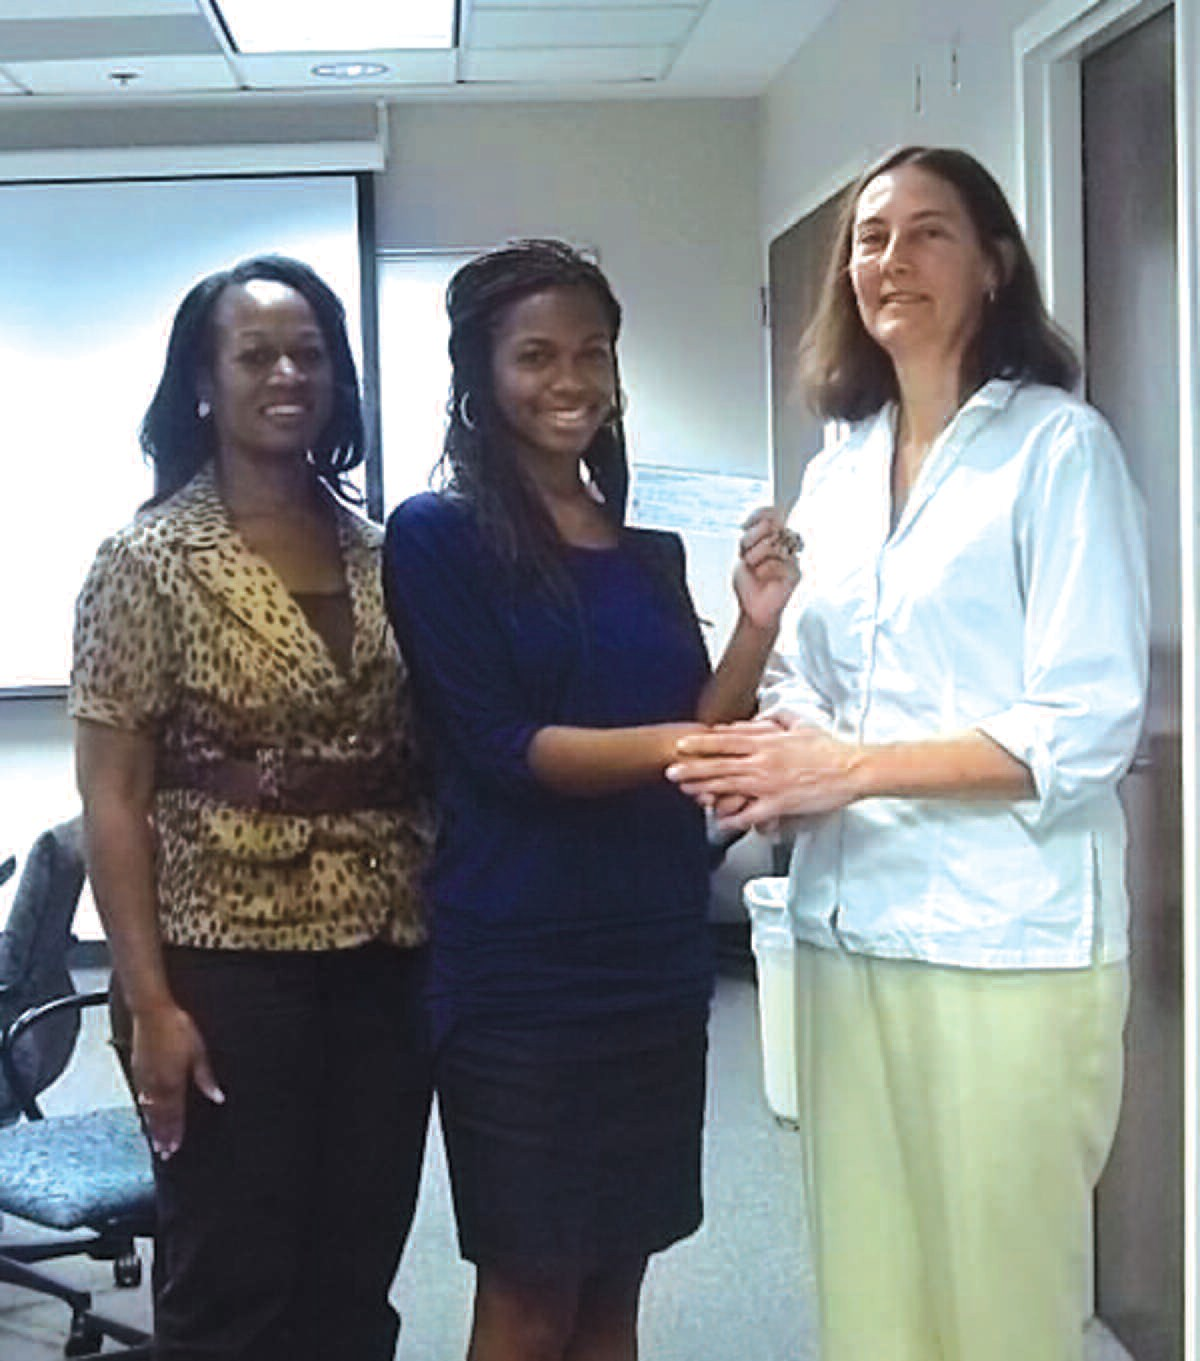 L to r: Michelle Britton, Chantel Britton and Dr. Carol Mulligan